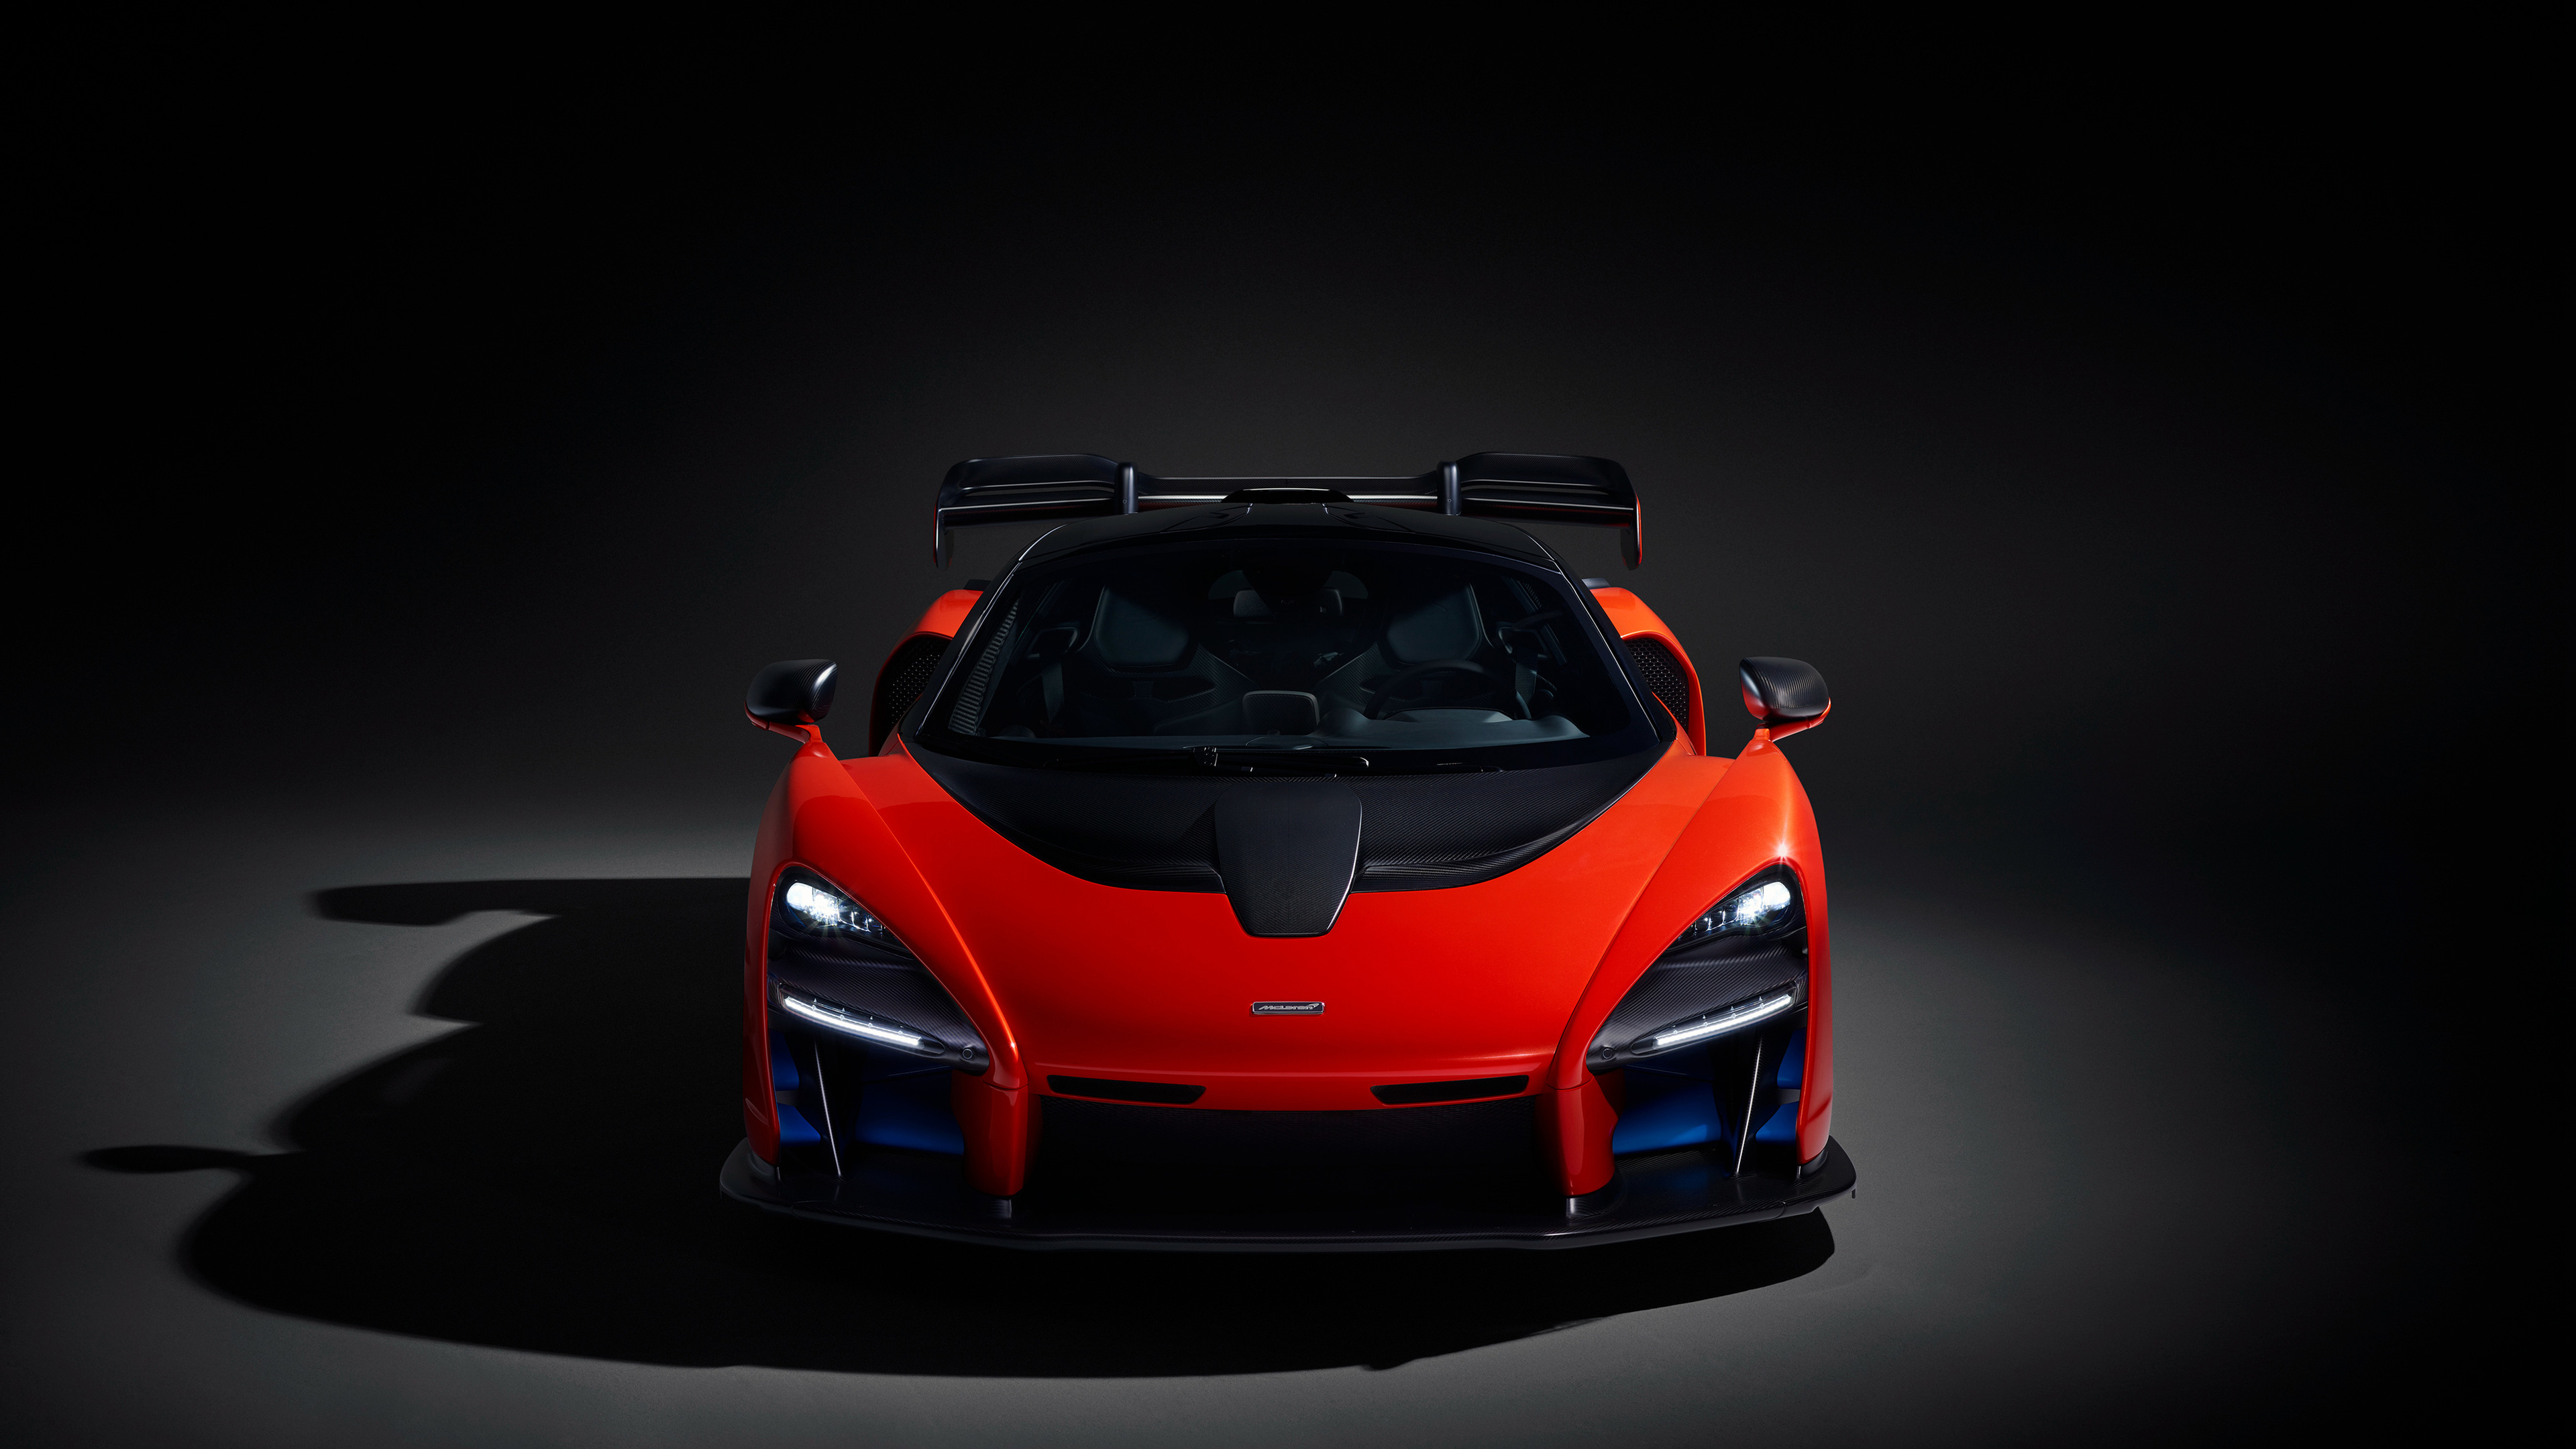 2018 mclaren senna front view 1539108683 - 2018 McLaren Senna Front View - mclaren wallpapers, mclaren senna wallpapers, hd-wallpapers, 4k-wallpapers, 2018 cars wallpapers